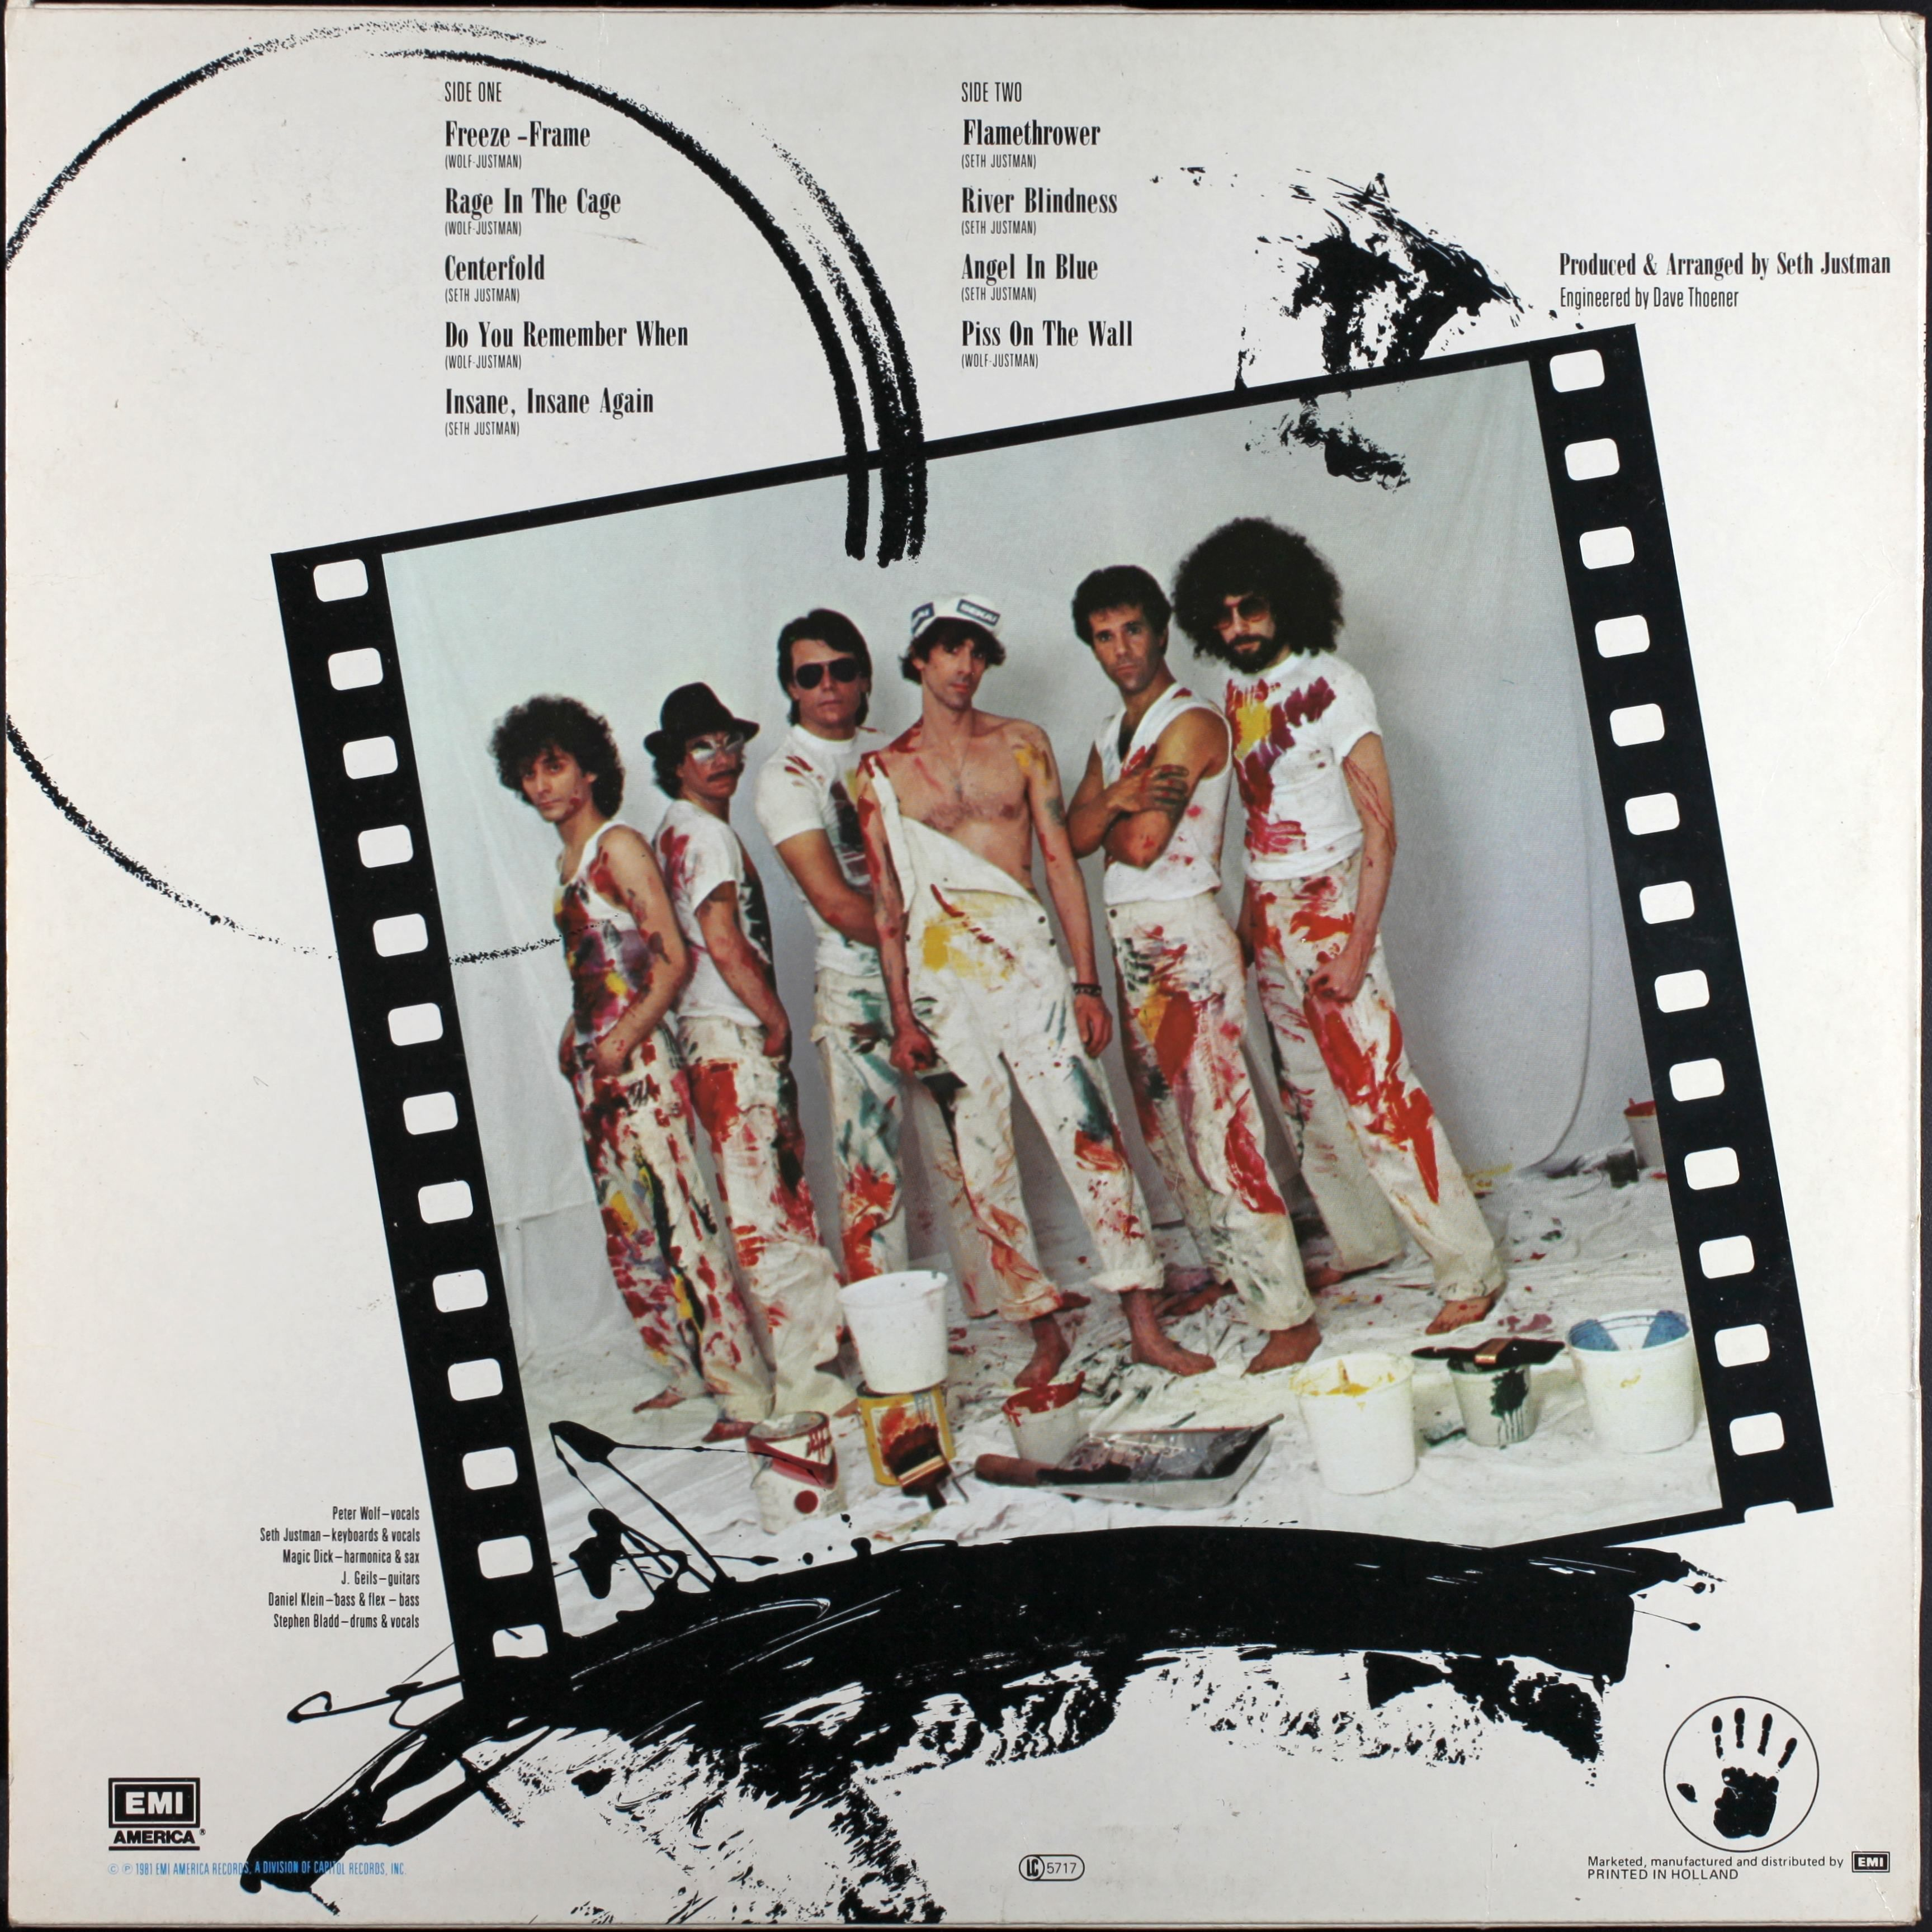 The J. Geils Band - Freeze Frame (1981) back cover | My 80s Vinyl ...